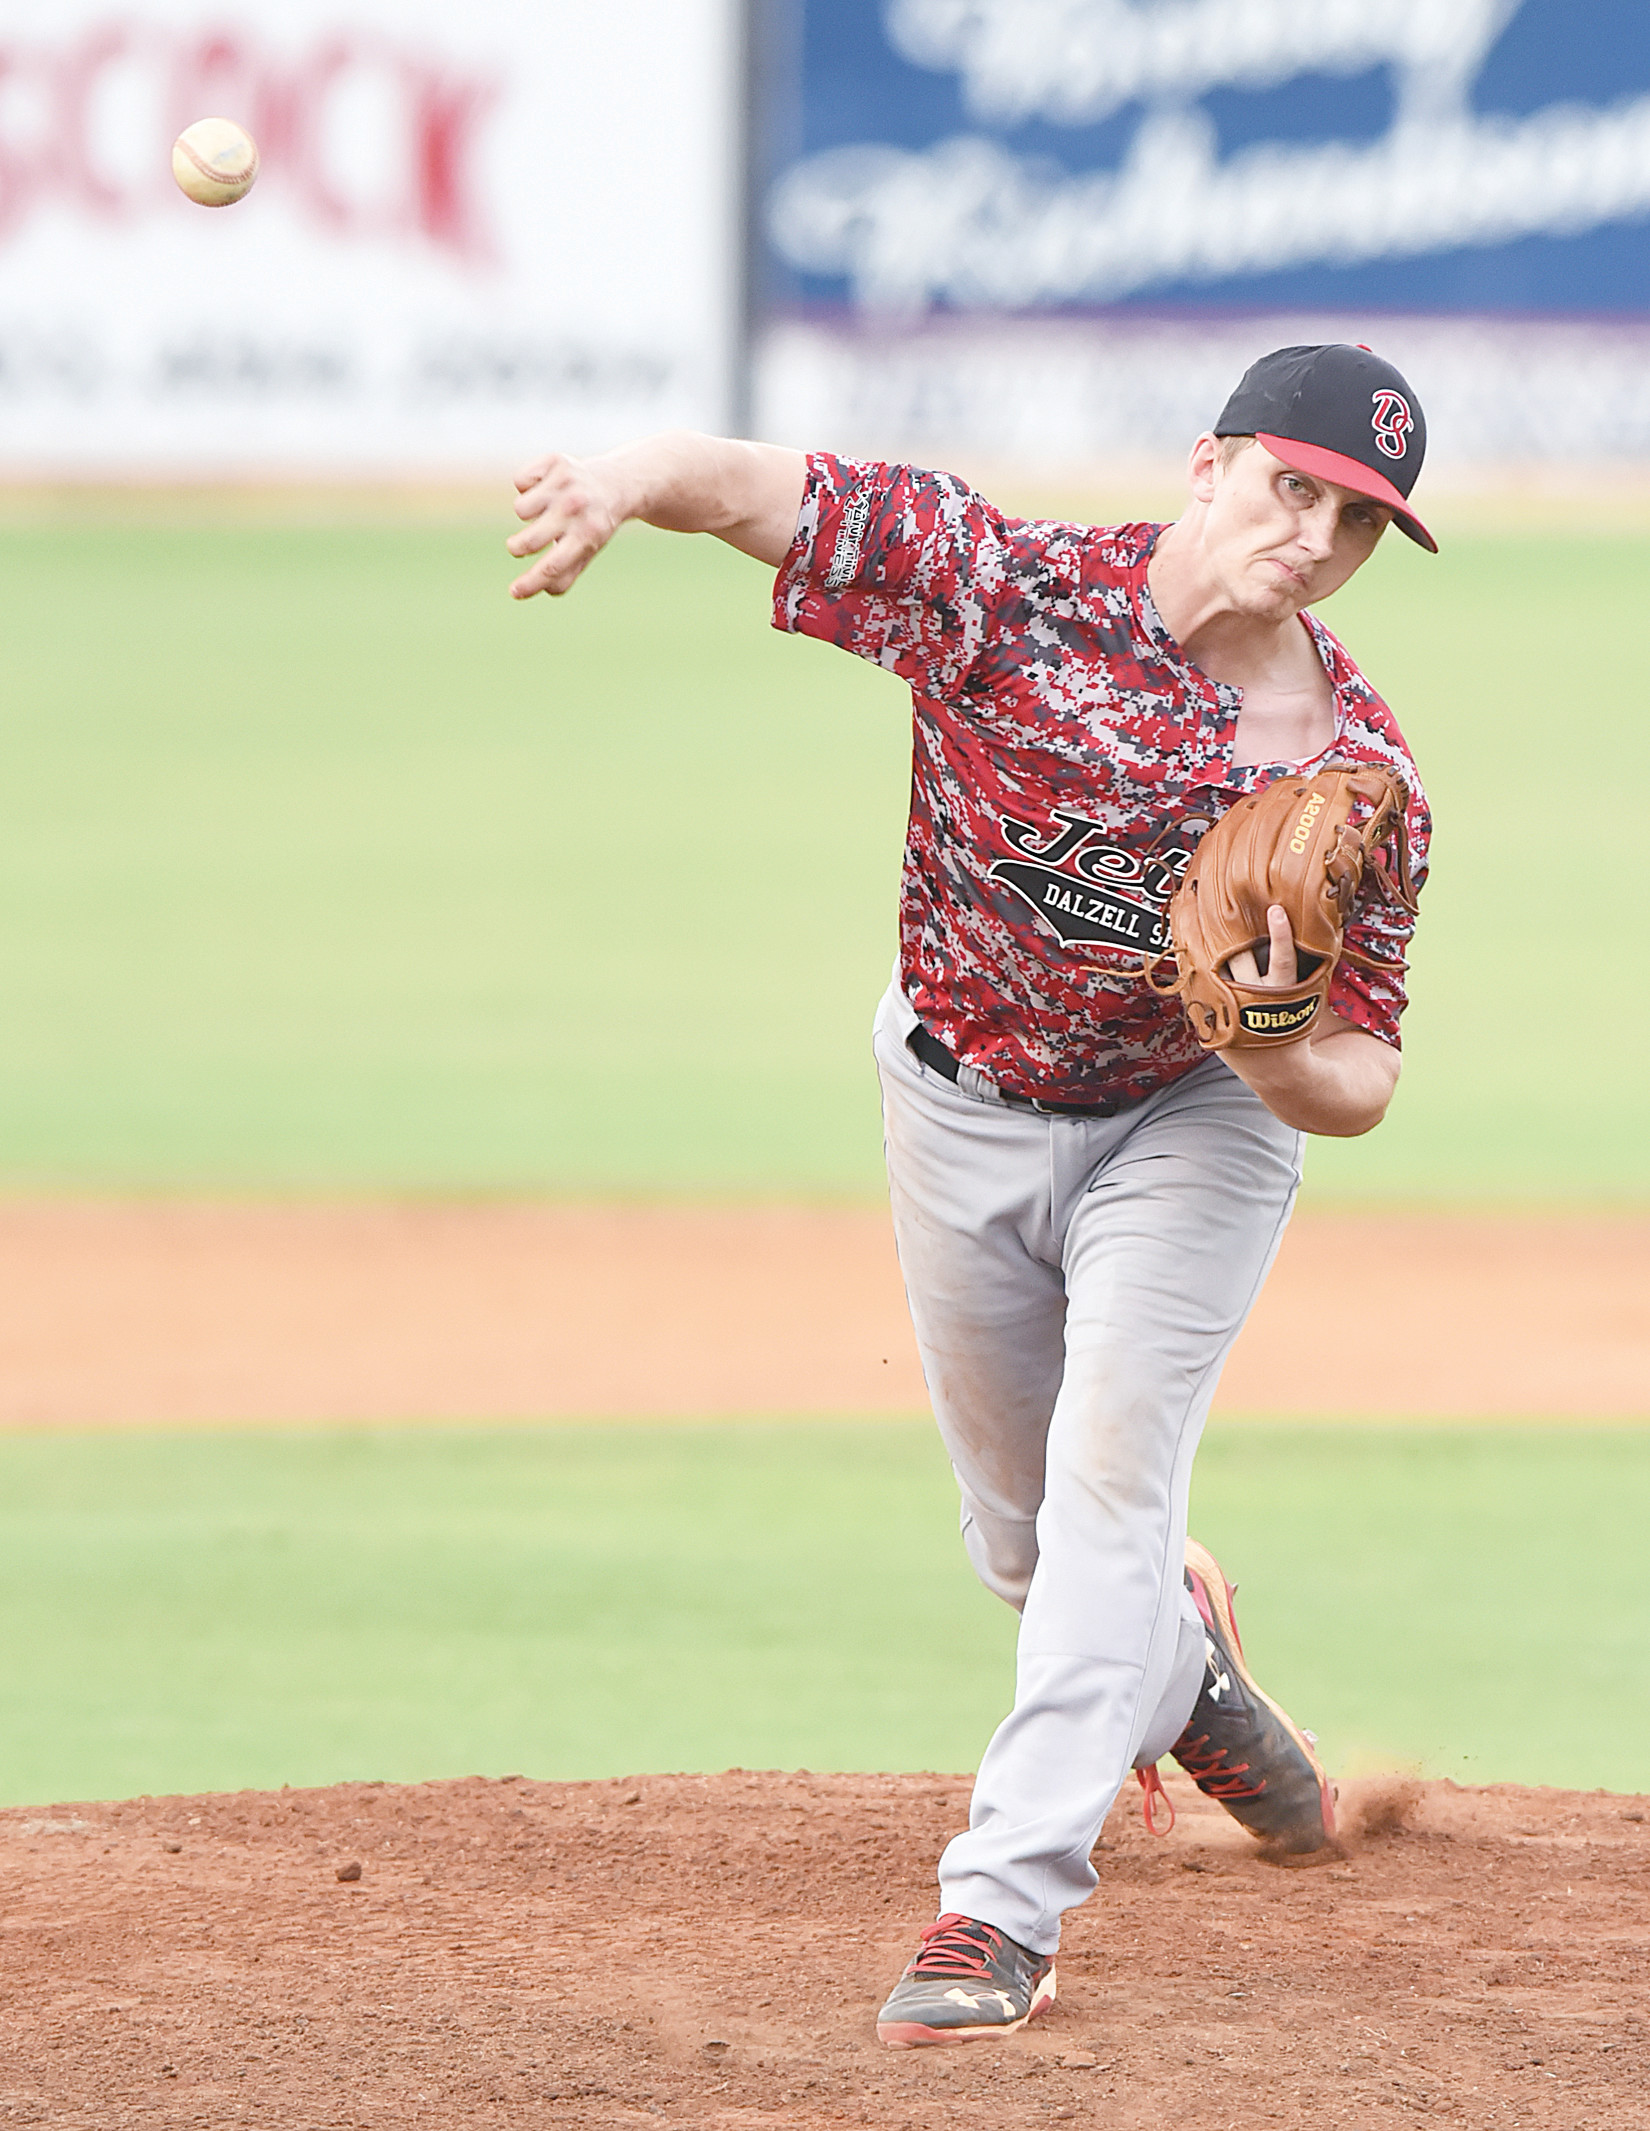 Dalzell- Shaw starting pitcher Josh Whitley, seen here throwing against Sumter, and the rest of the Jets fell to Camden 14-4 on Friday at General Field in the final game of the regular season.